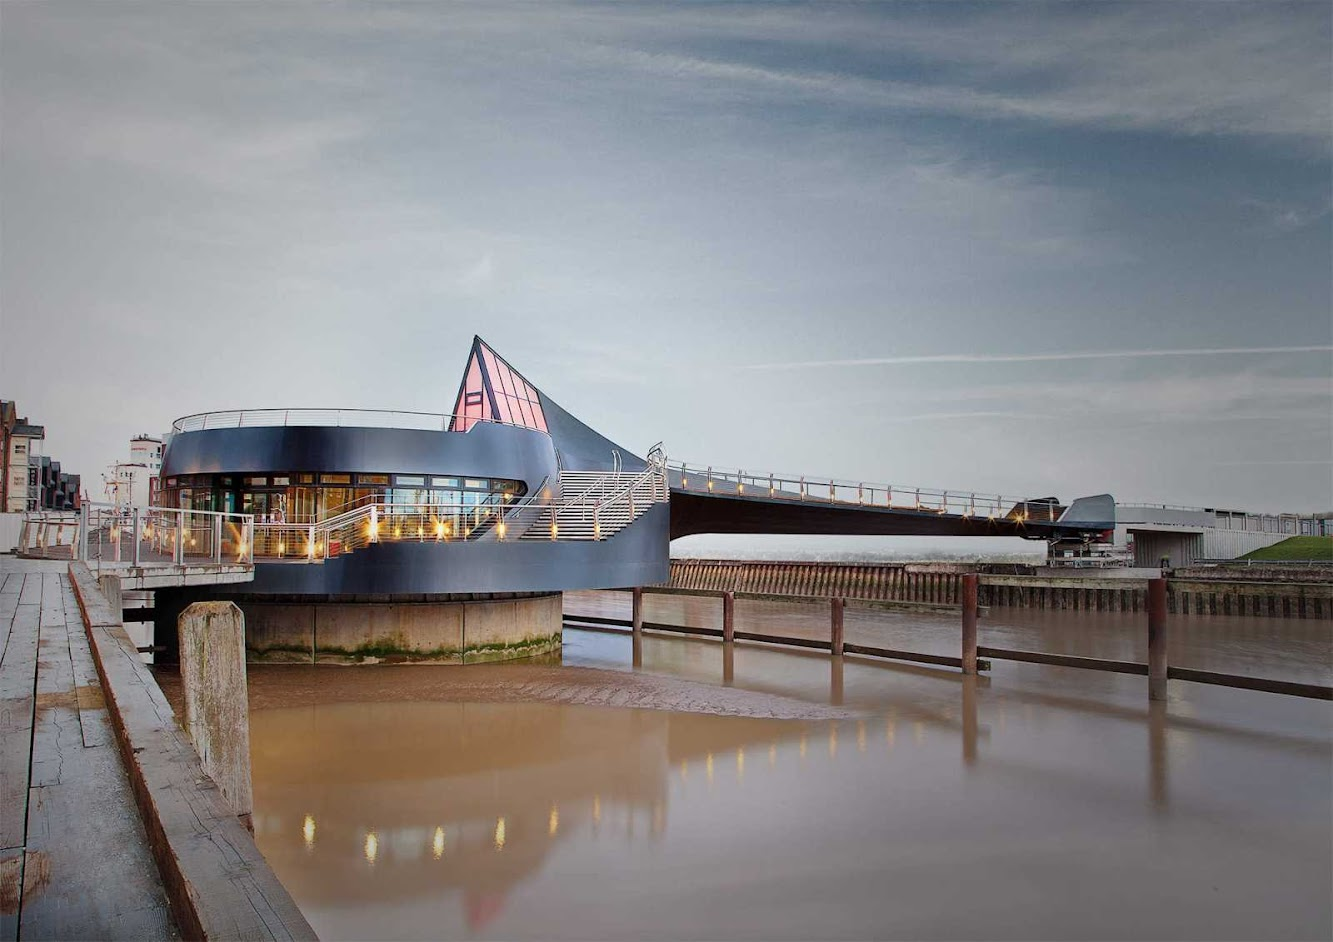 Hull, Regno Unito: Scale Lane Bridge by Mcdowell+Benedetti Architects